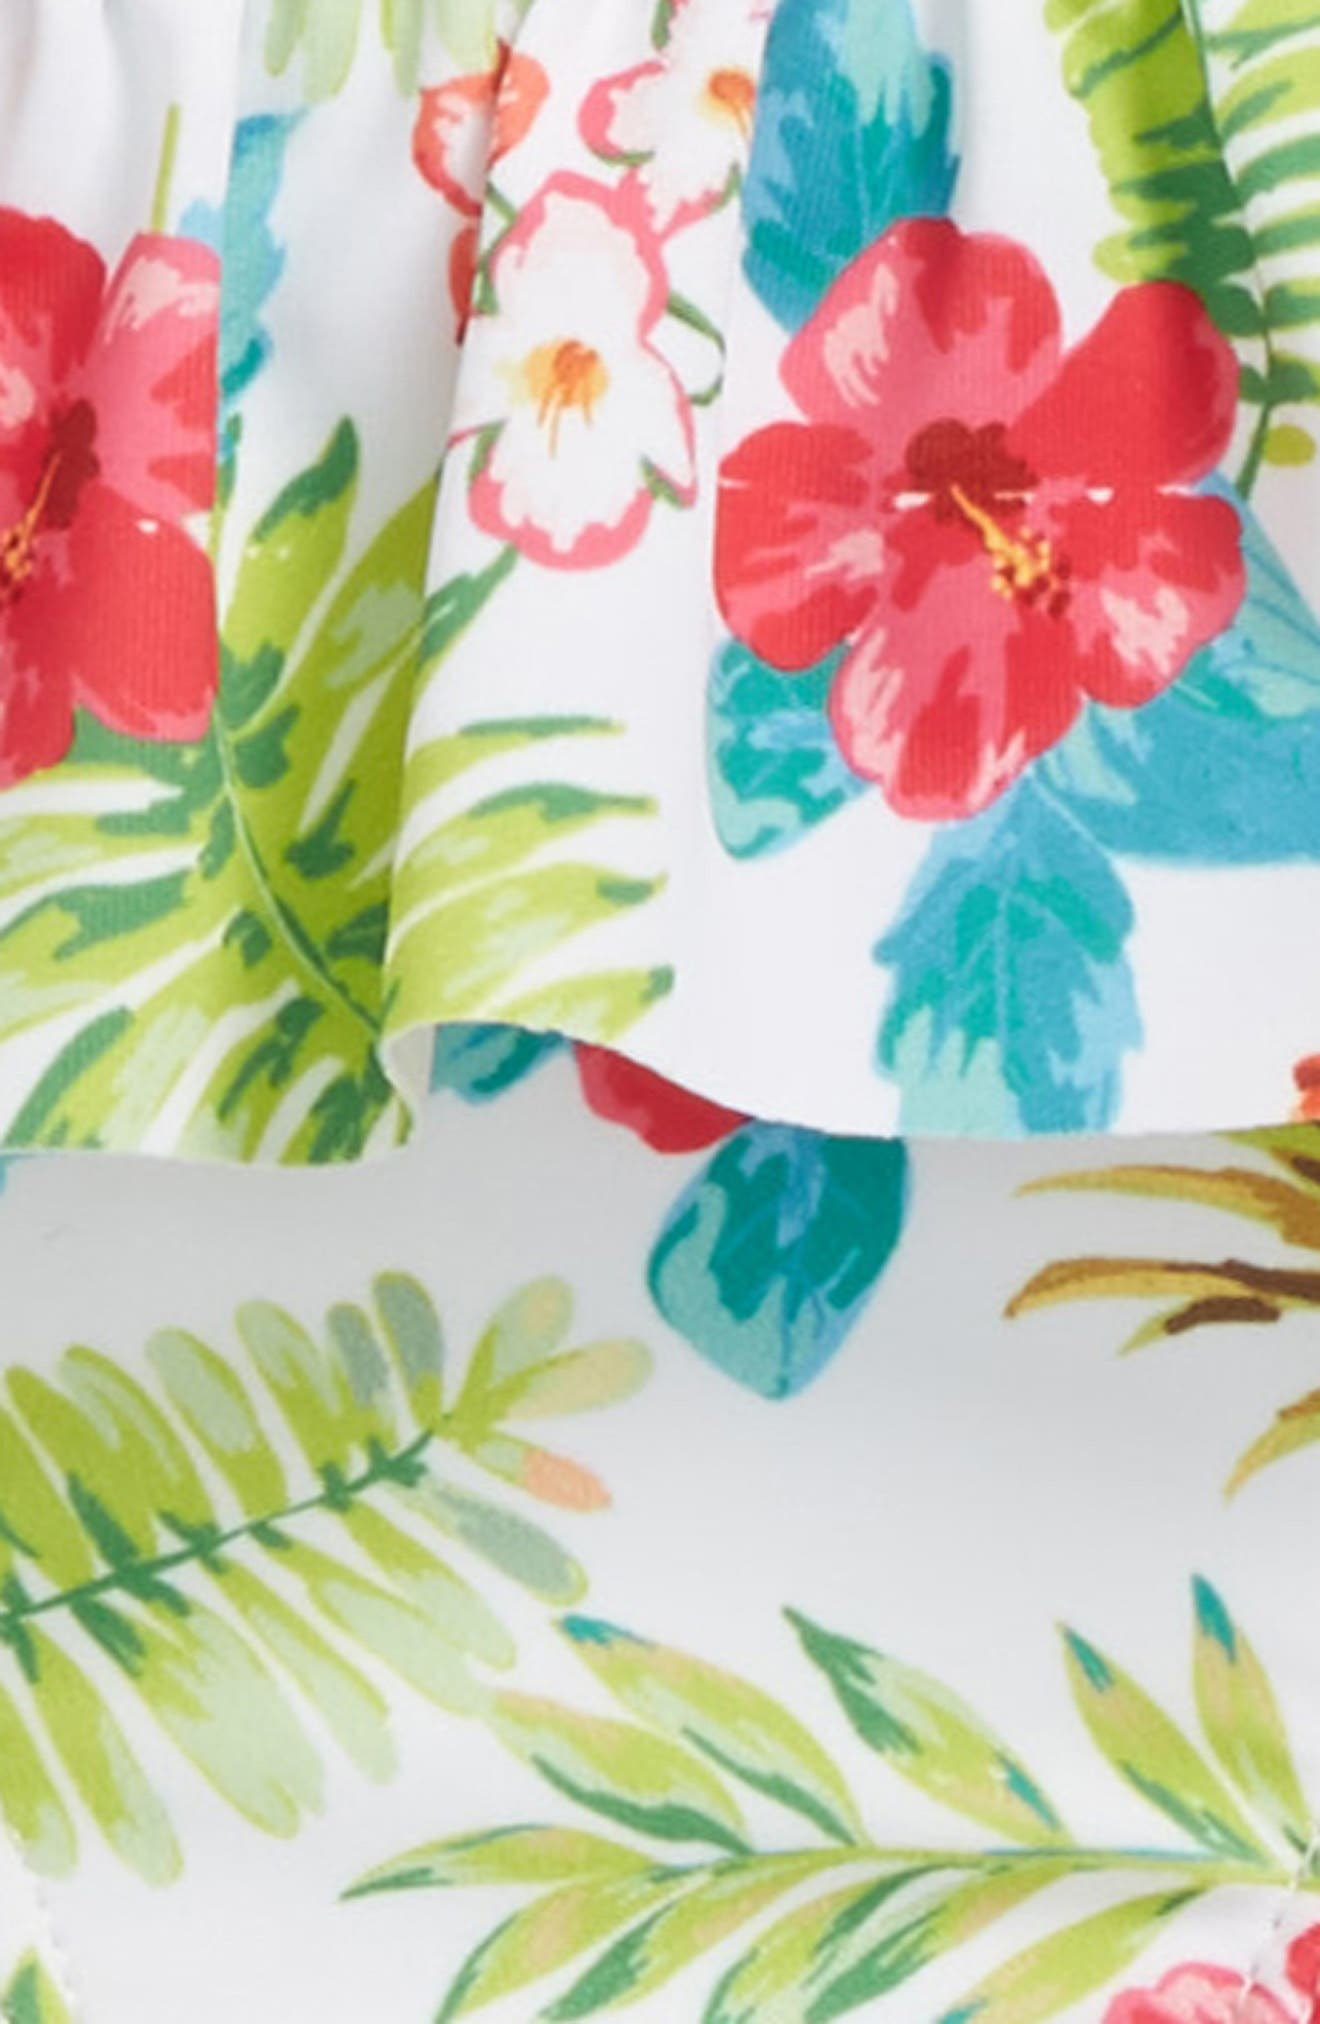 Tropical Holiday Two-Piece Swimsuit,                             Alternate thumbnail 2, color,                             300